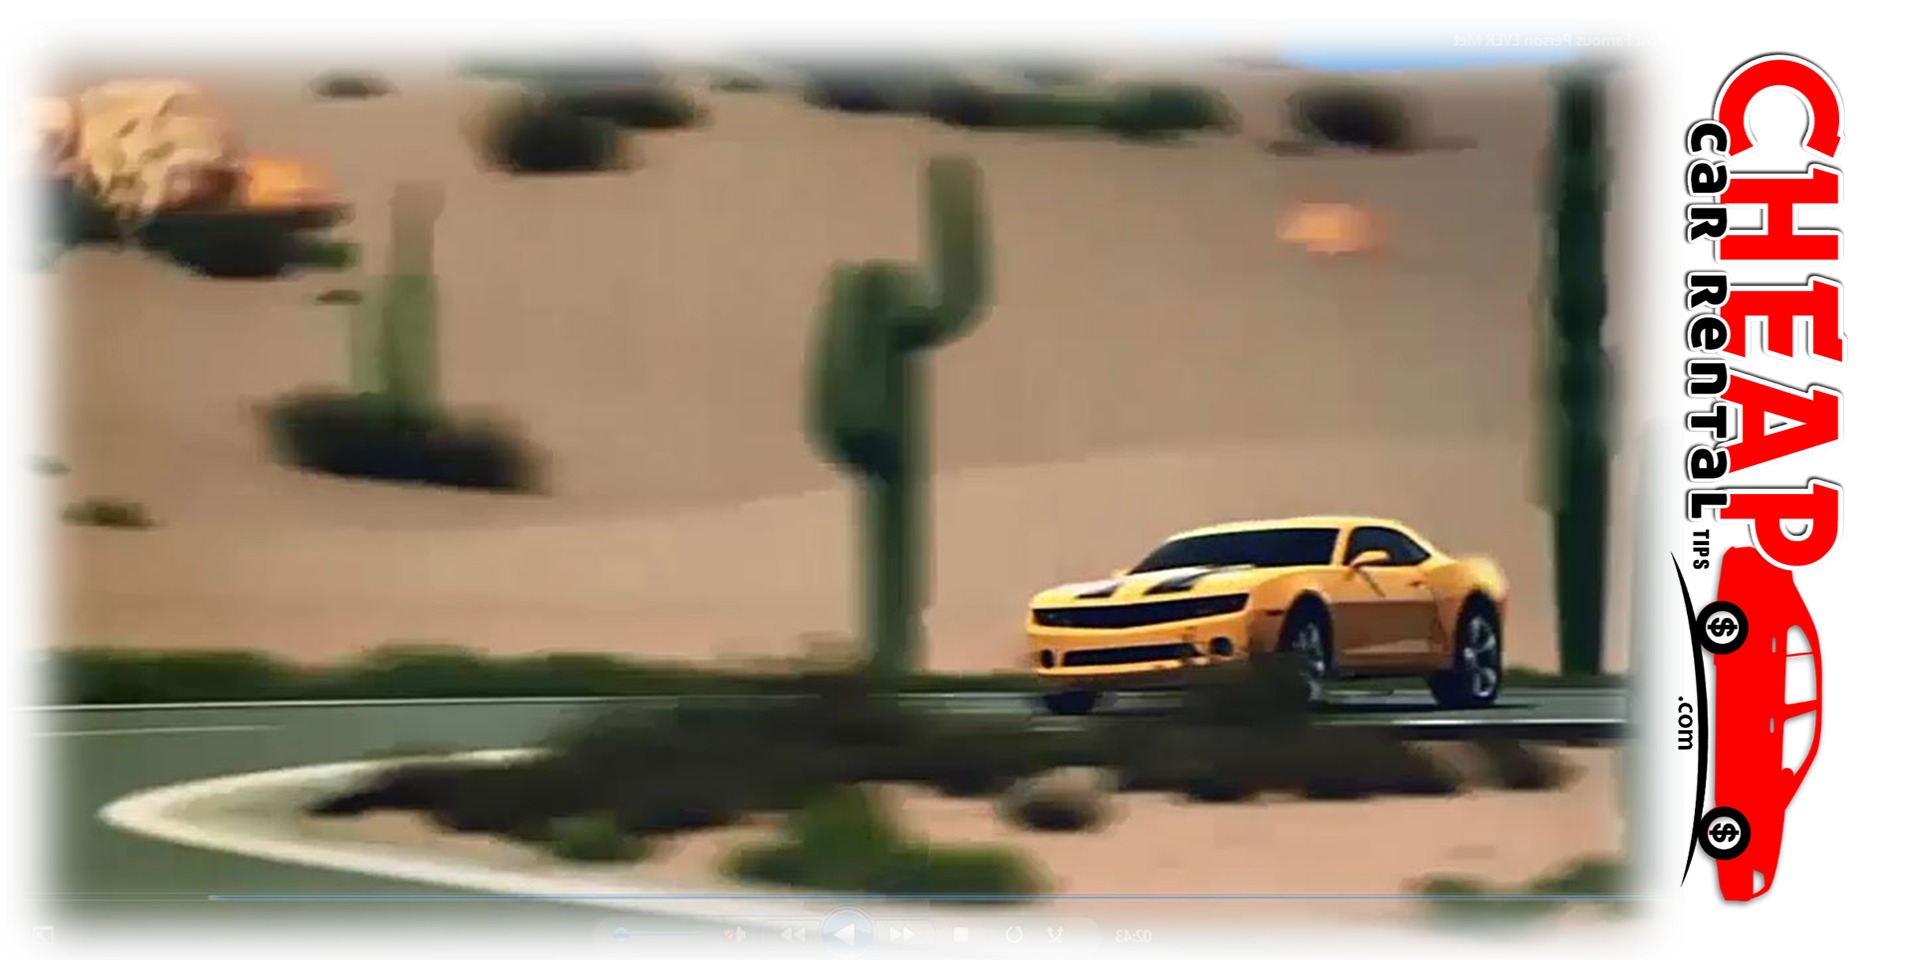 http://cheapcarrentaltips.com Just a cool capture of the yellow car.